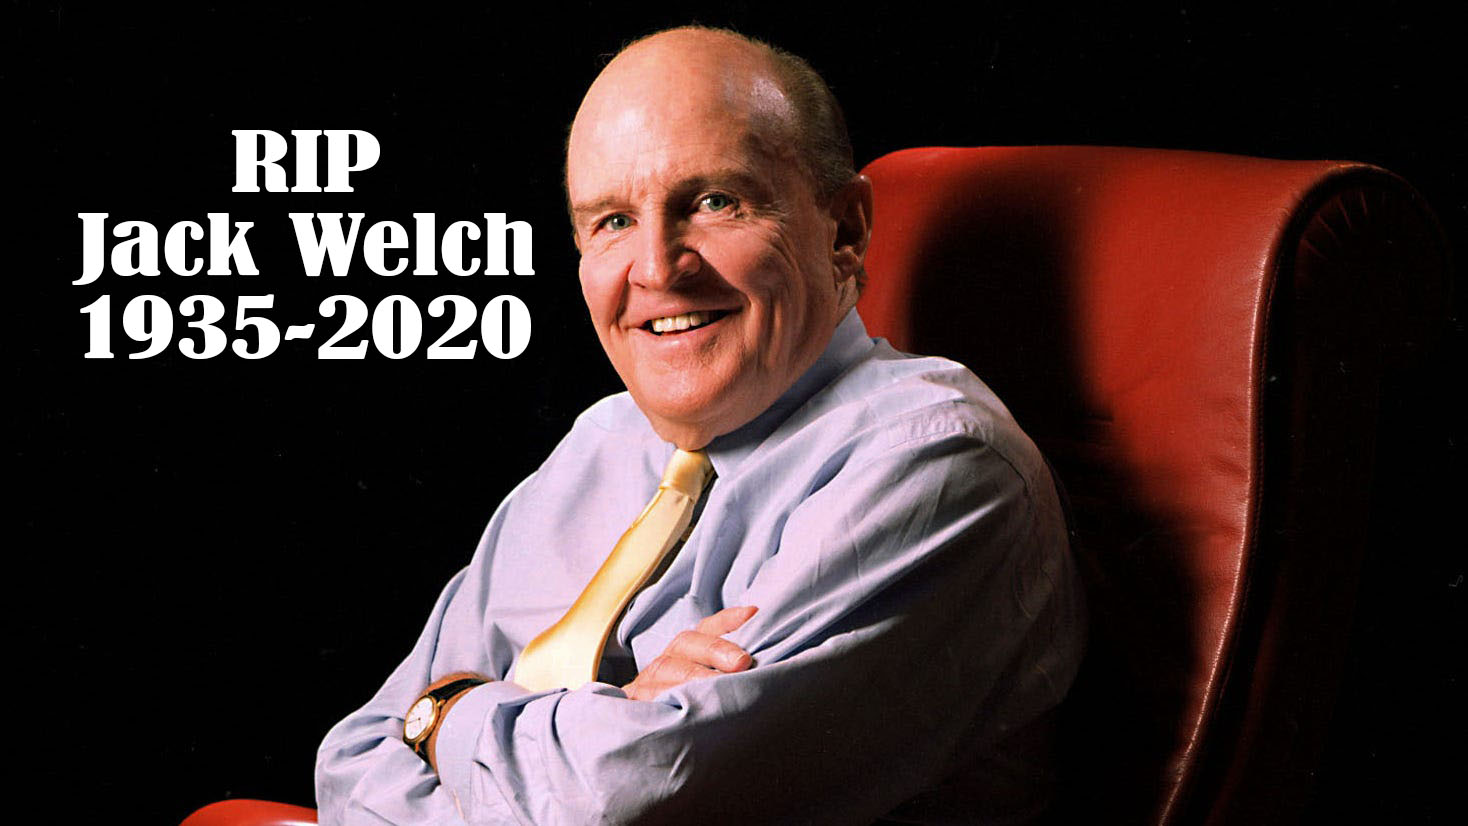 Jack Welch Bio, Wiki, Age, Education, Career, Wife, Net Worth, Cause Of Death